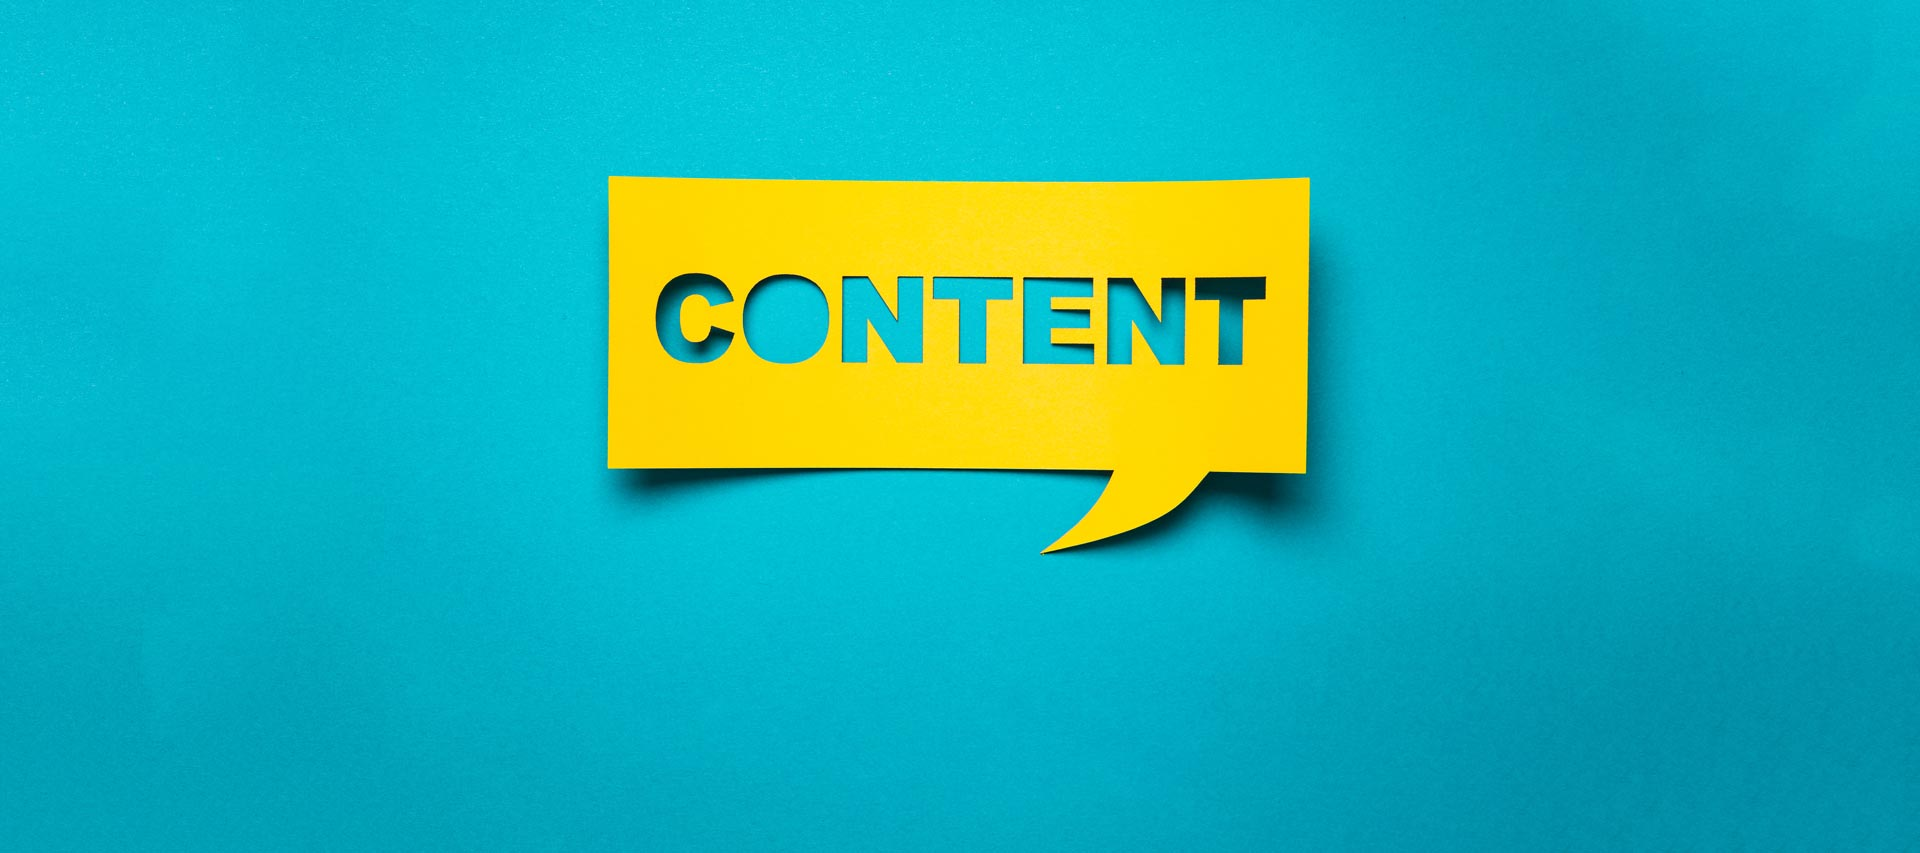 How to Use Content to Market Your Brand